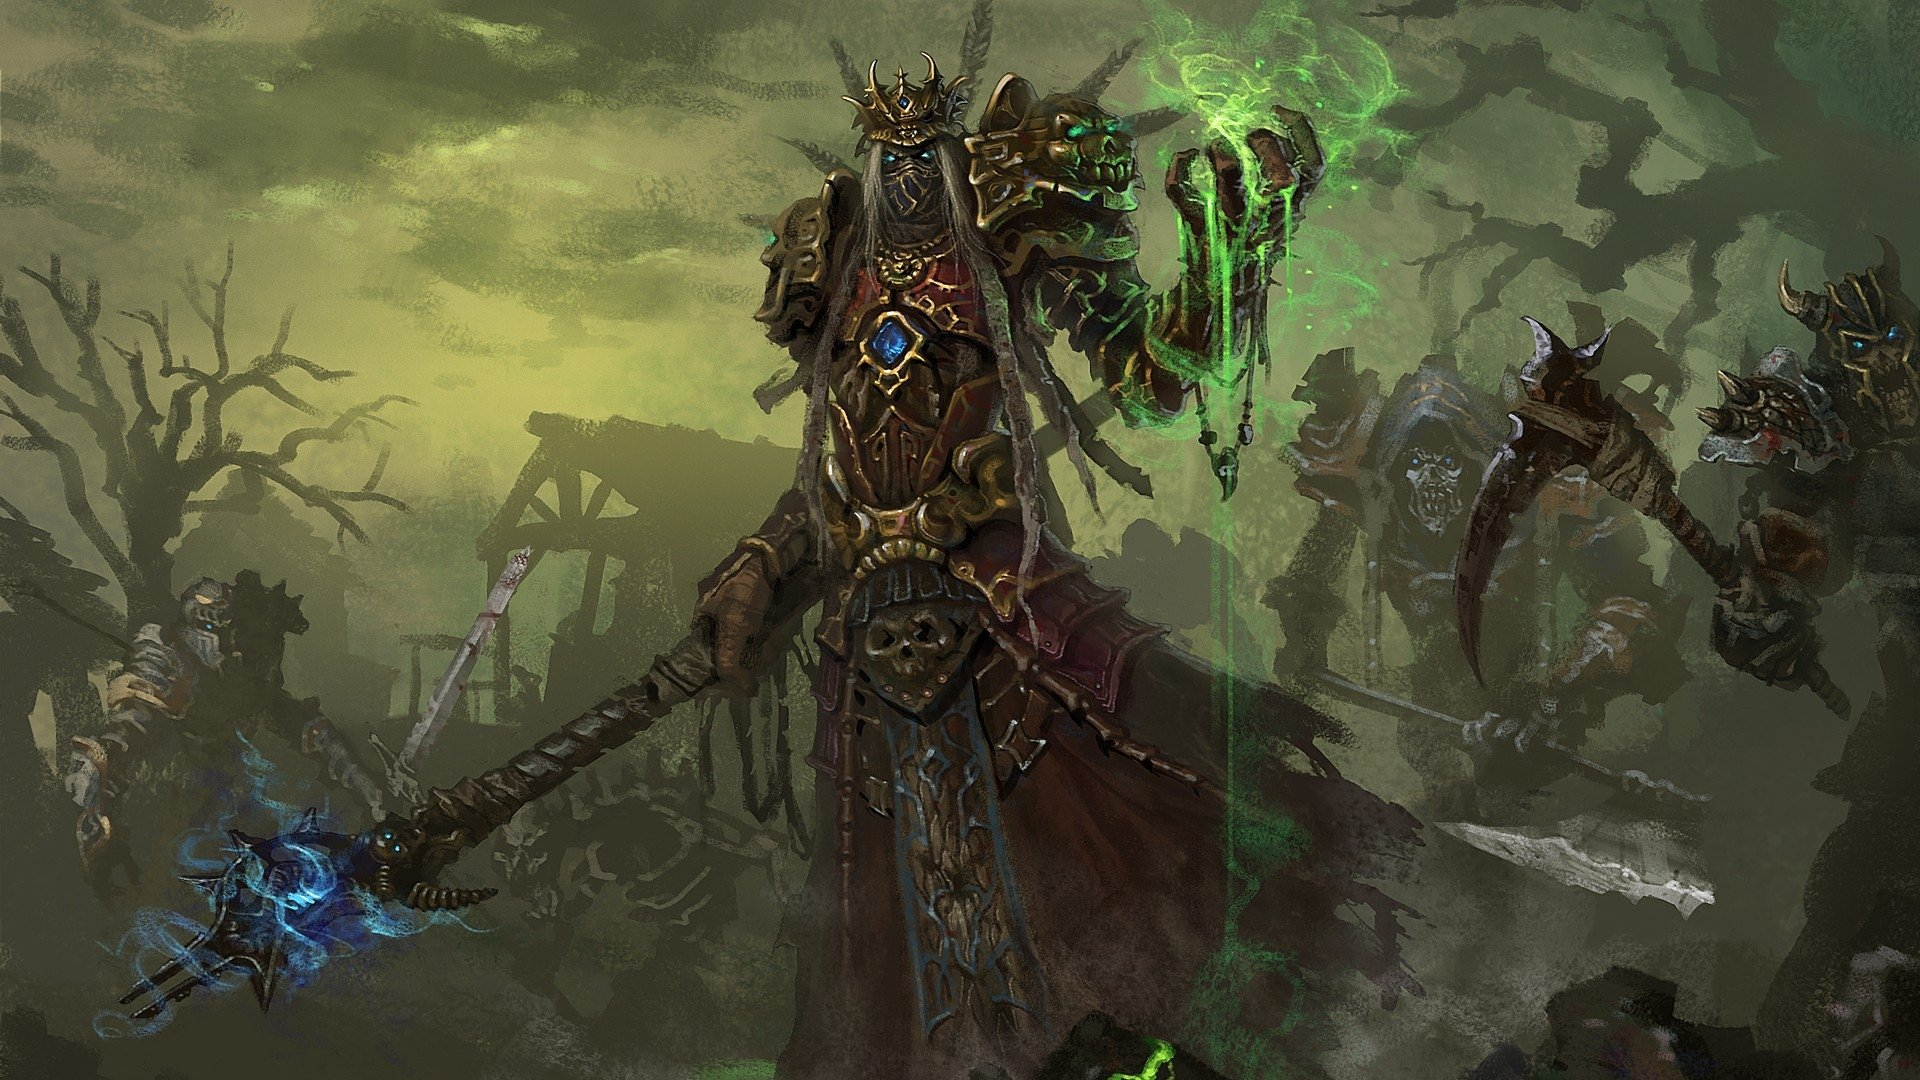 Fantasy Art Necromancers Wallpapers Hd Desktop And: World Of Warcraft Full HD Fond D'écran And Arrière-Plan